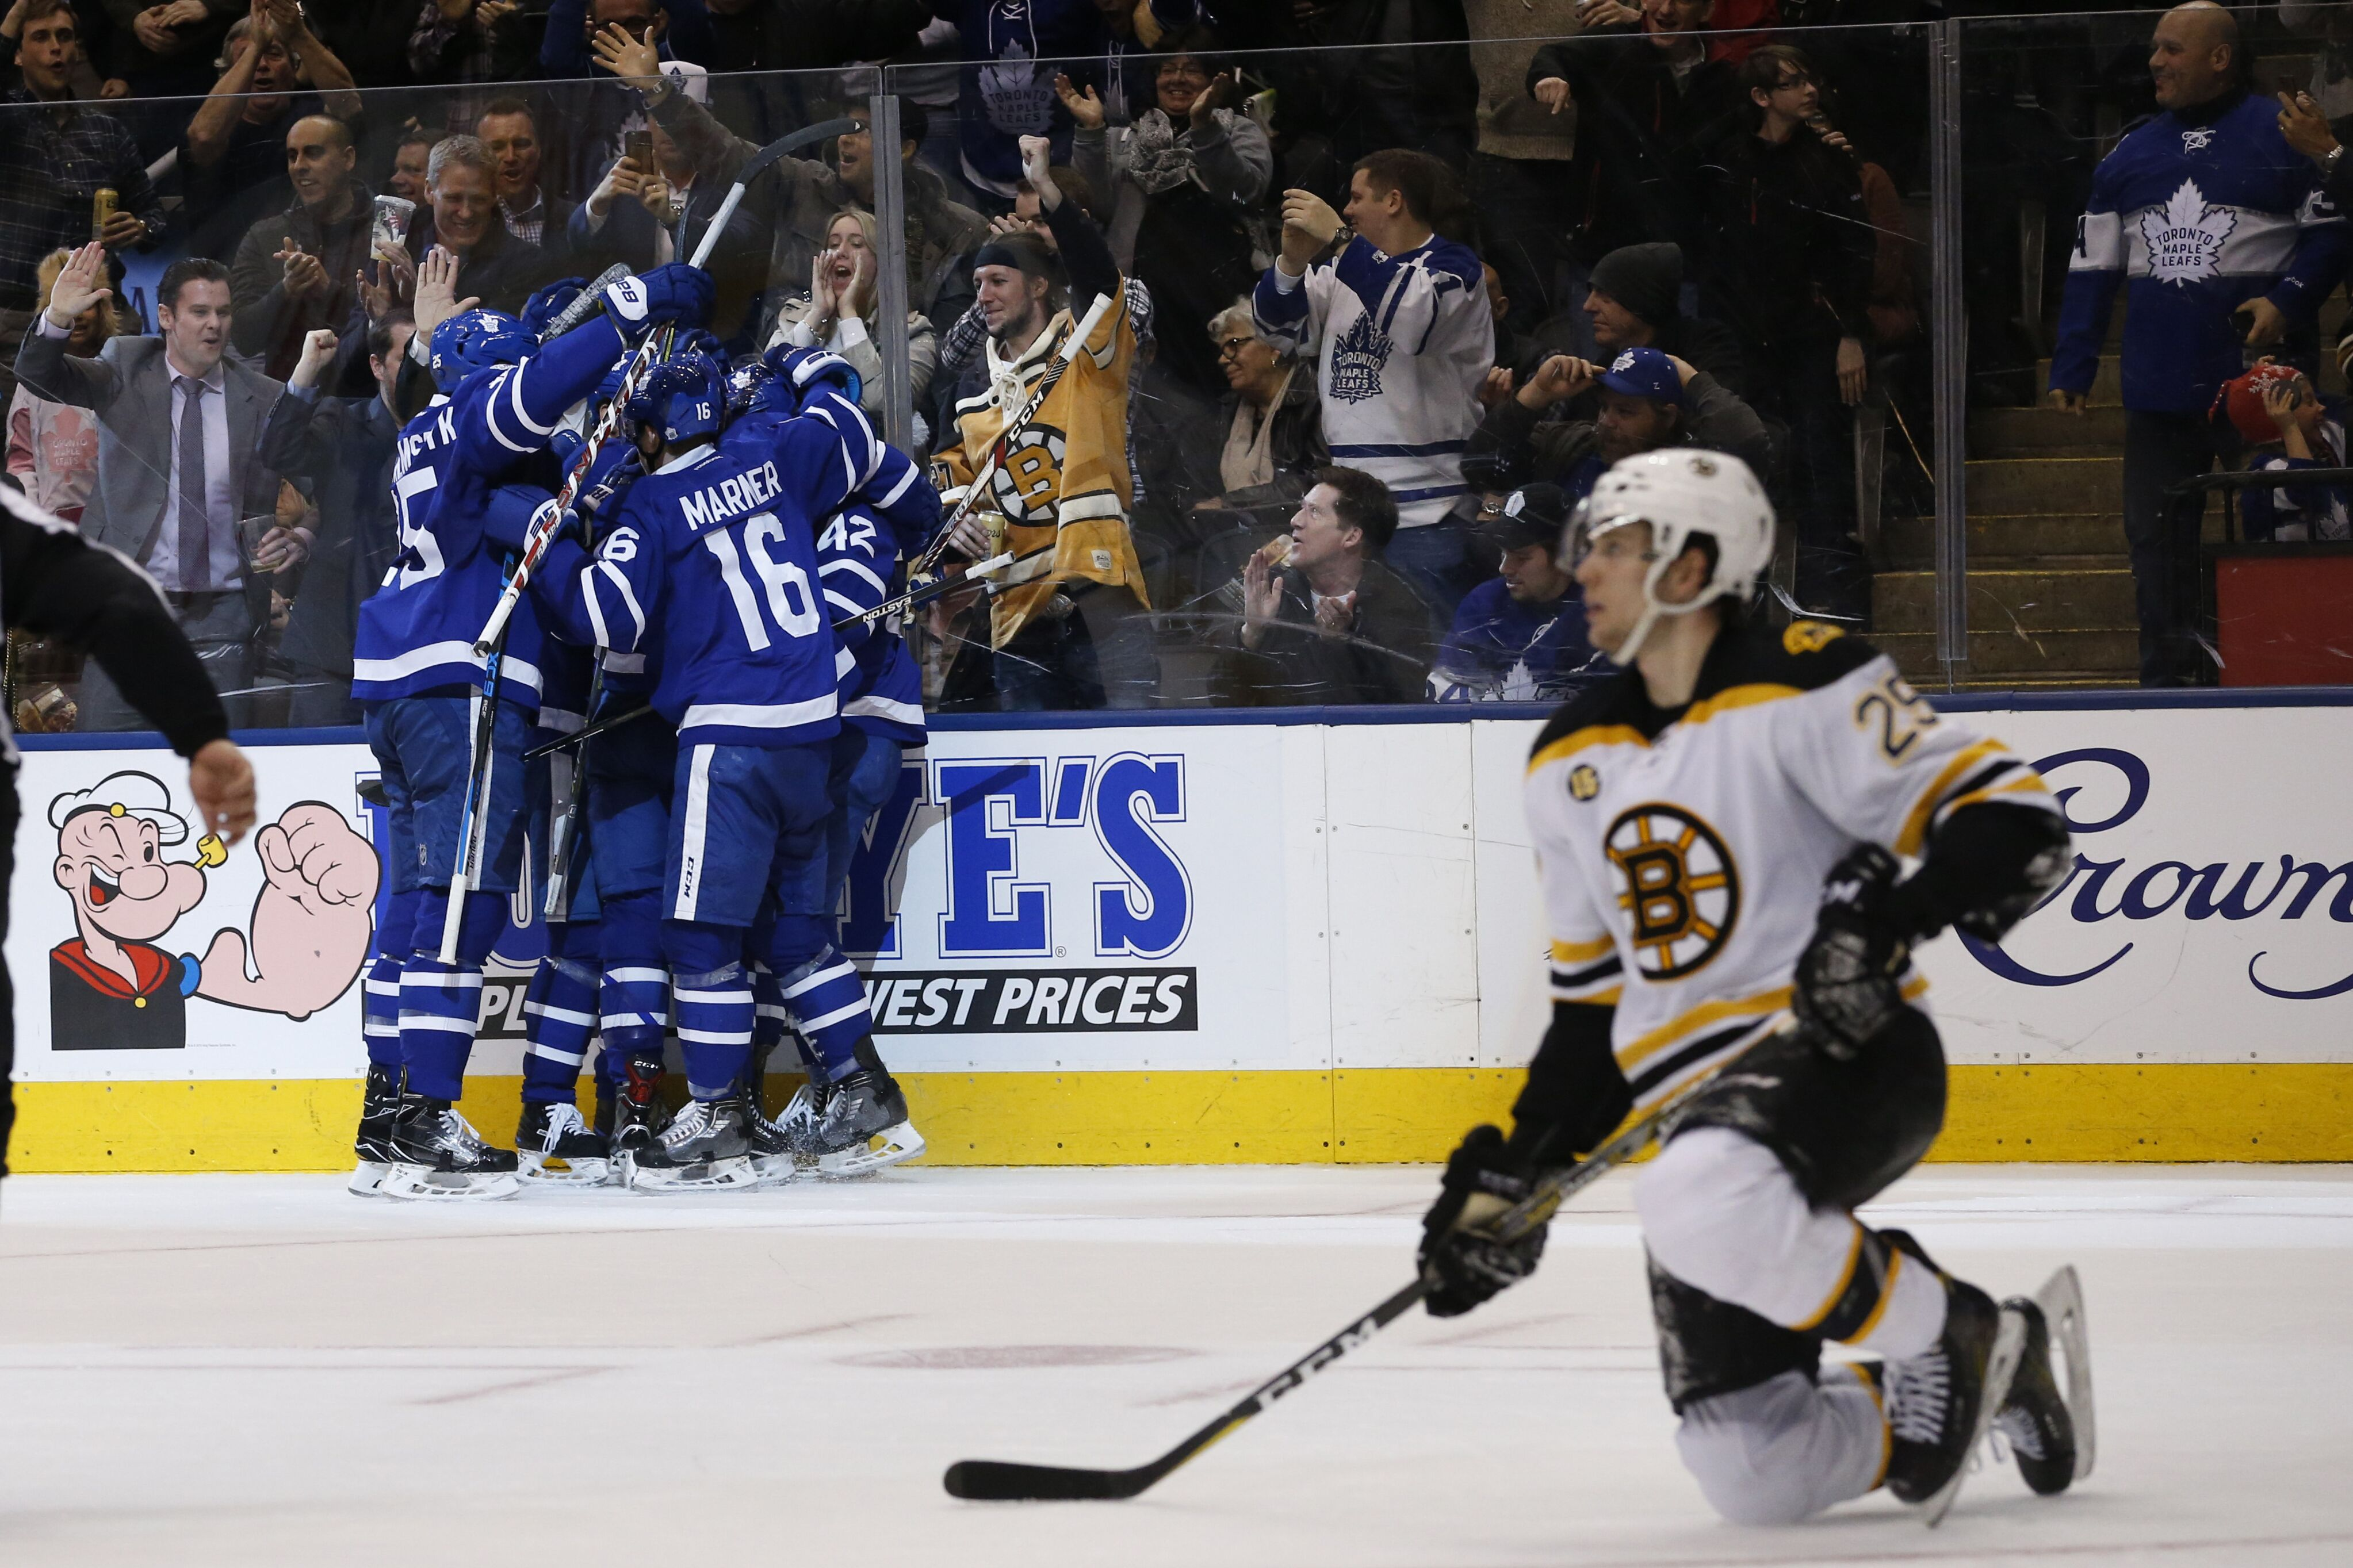 Toronto Maple Leafs: We're Shipping up to Boston